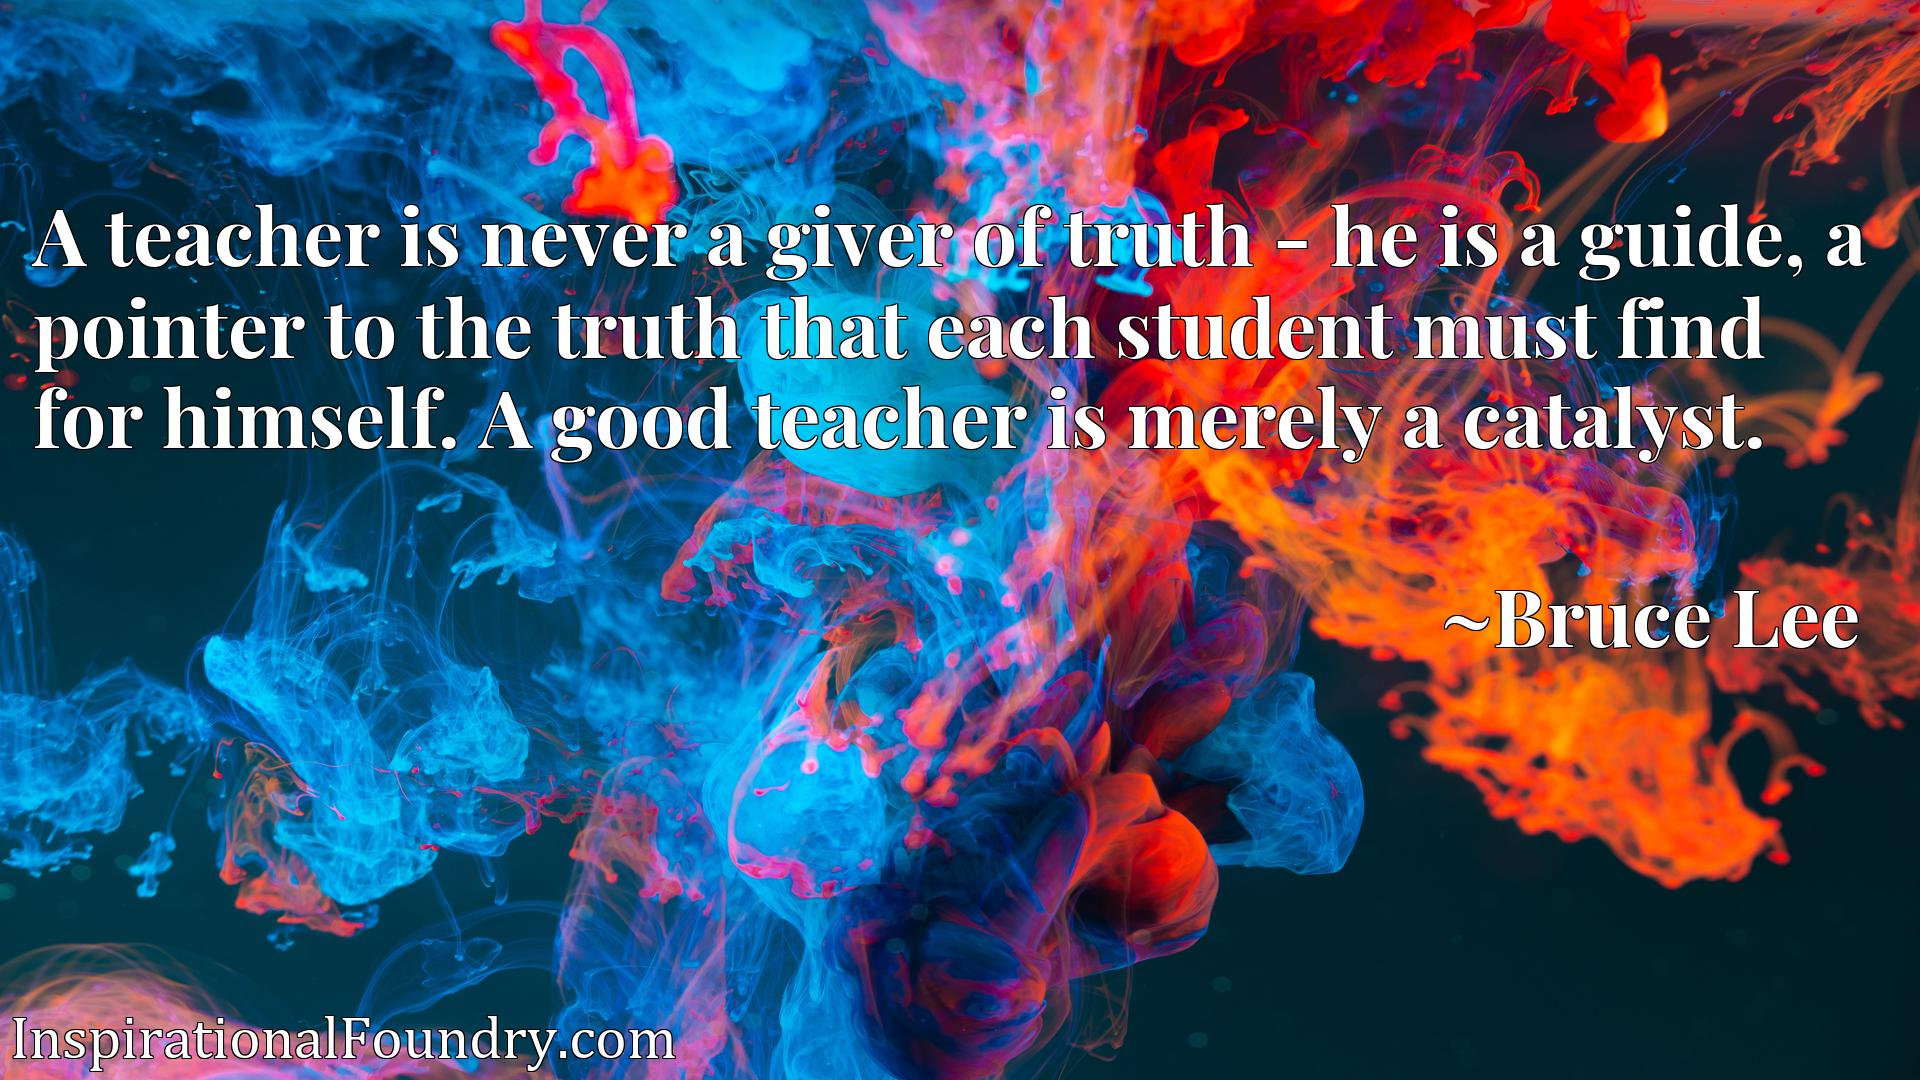 A teacher is never a giver of truth - he is a guide, a pointer to the truth that each student must find for himself. A good teacher is merely a catalyst.